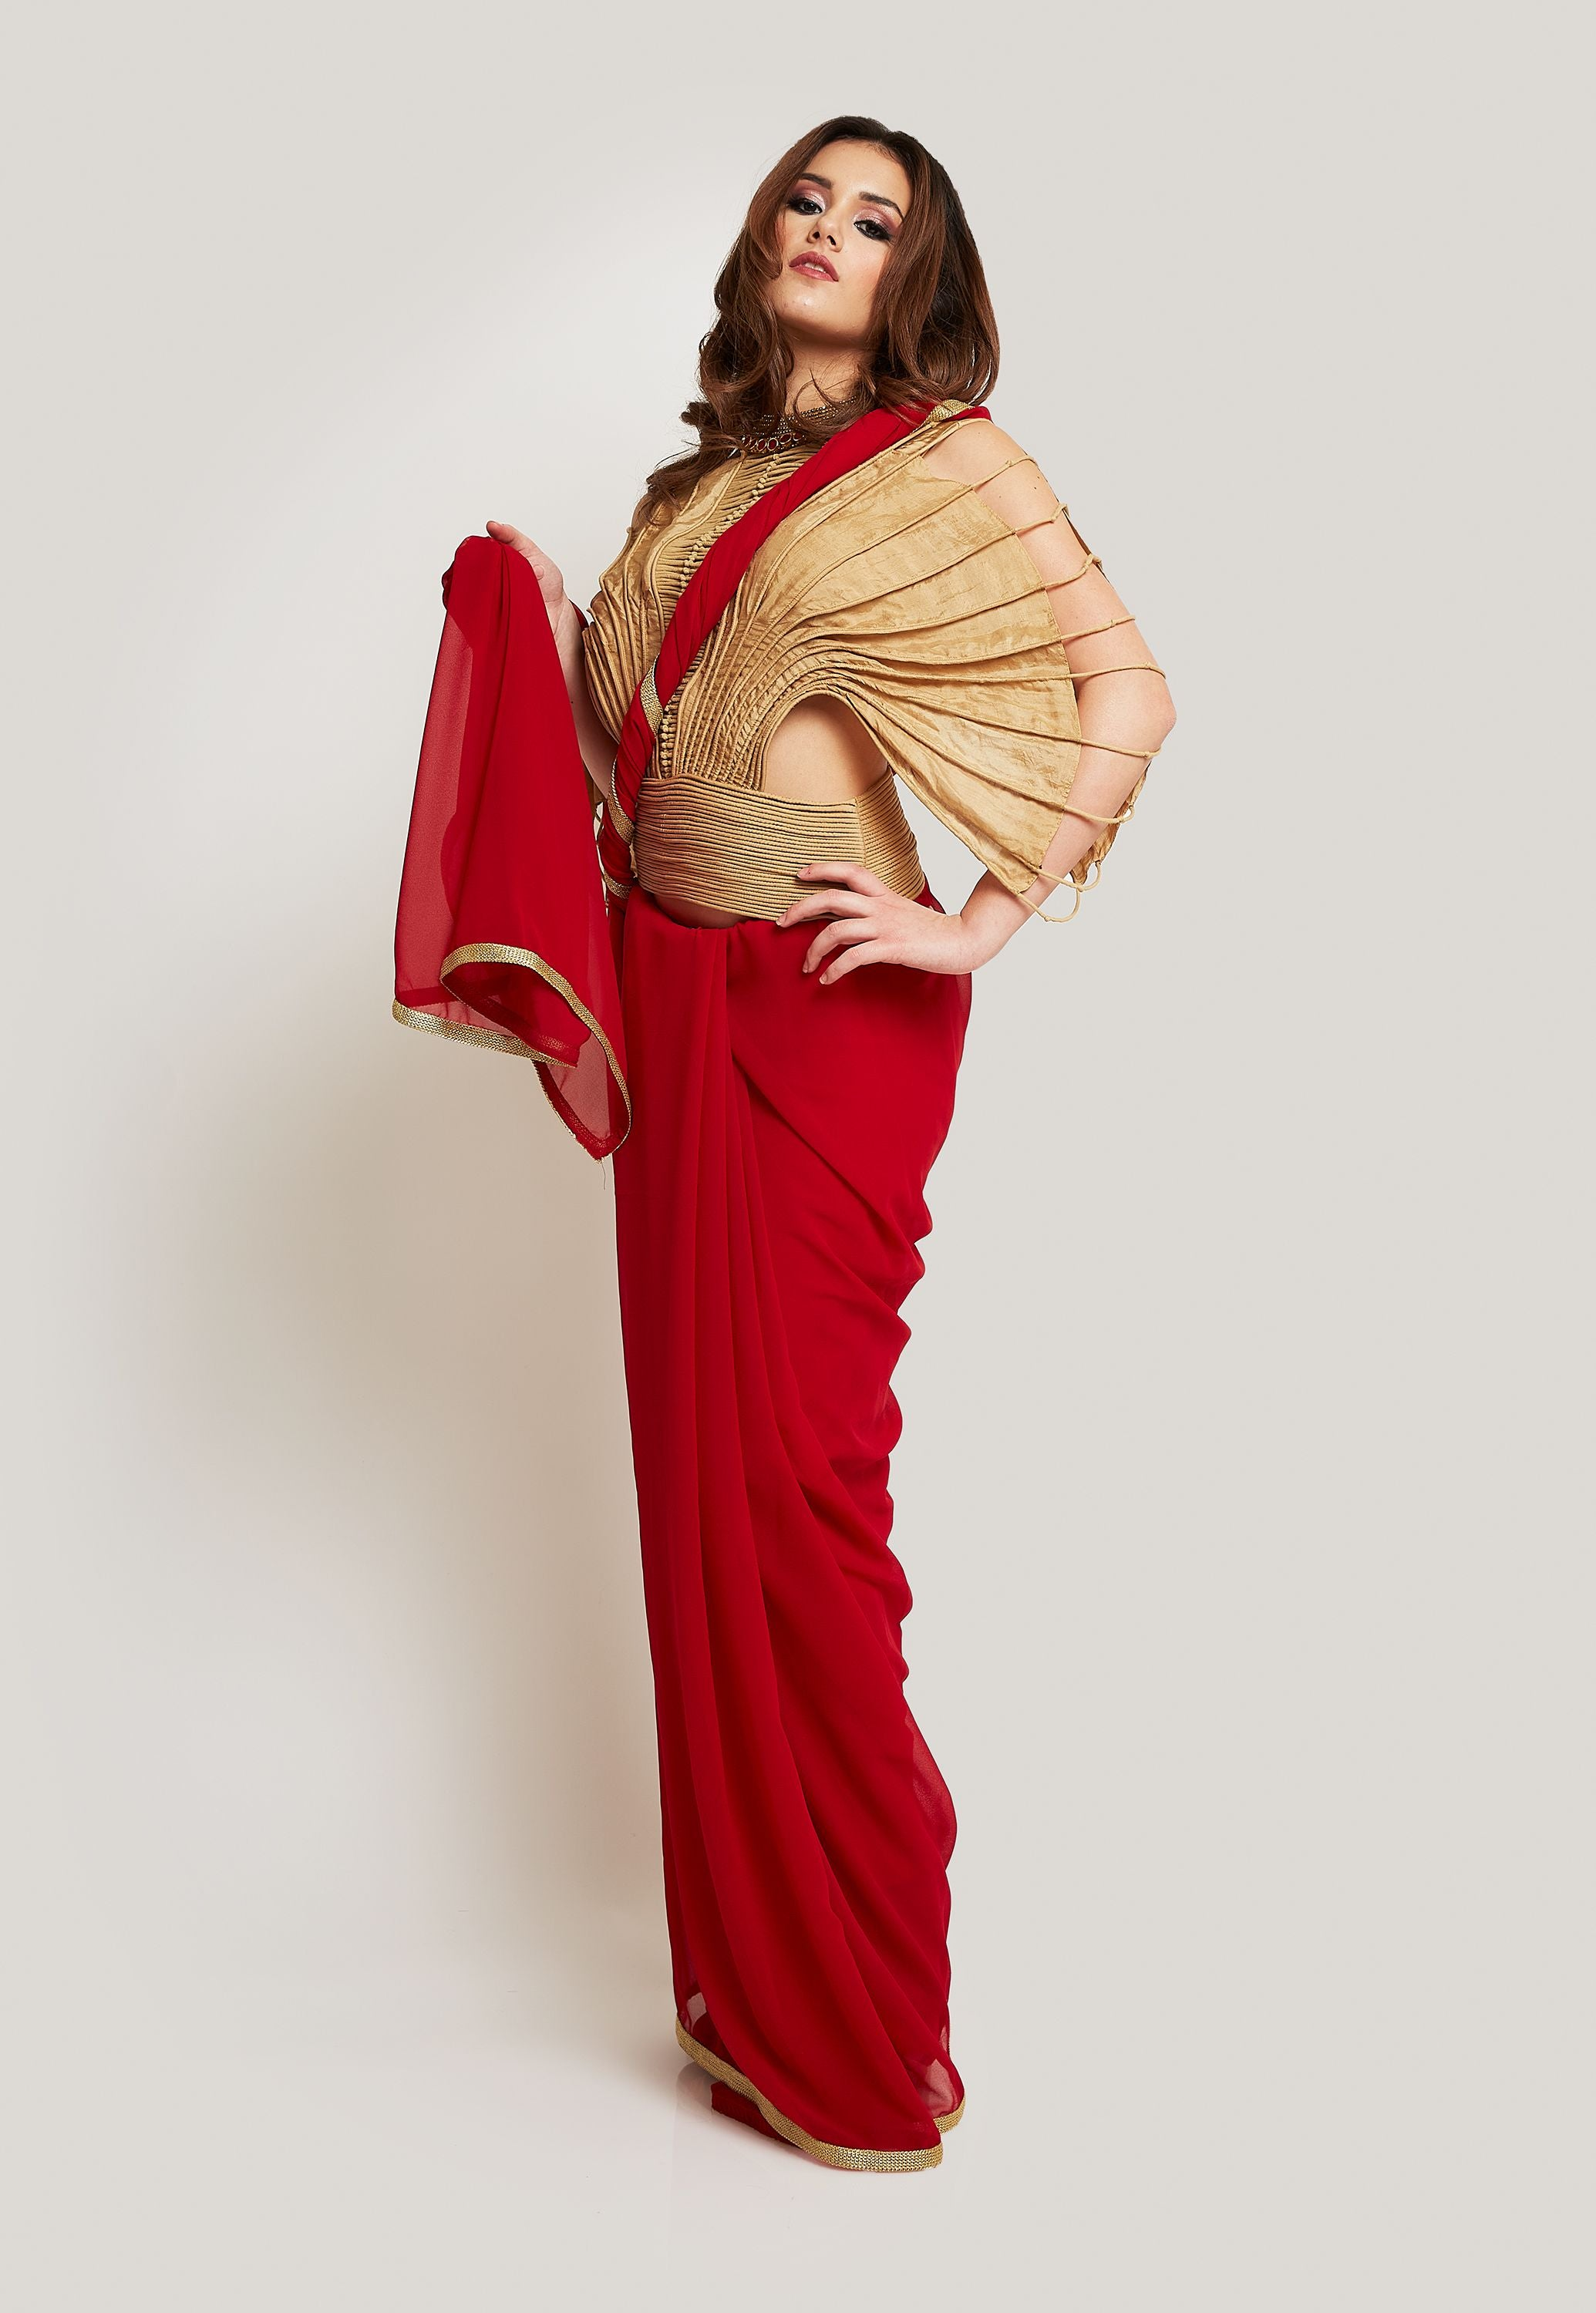 VAISHALI S. DISTINCTIVE GOLD HANDWOVEN BLOUSE WITH A RED GEORGETTE SAREE